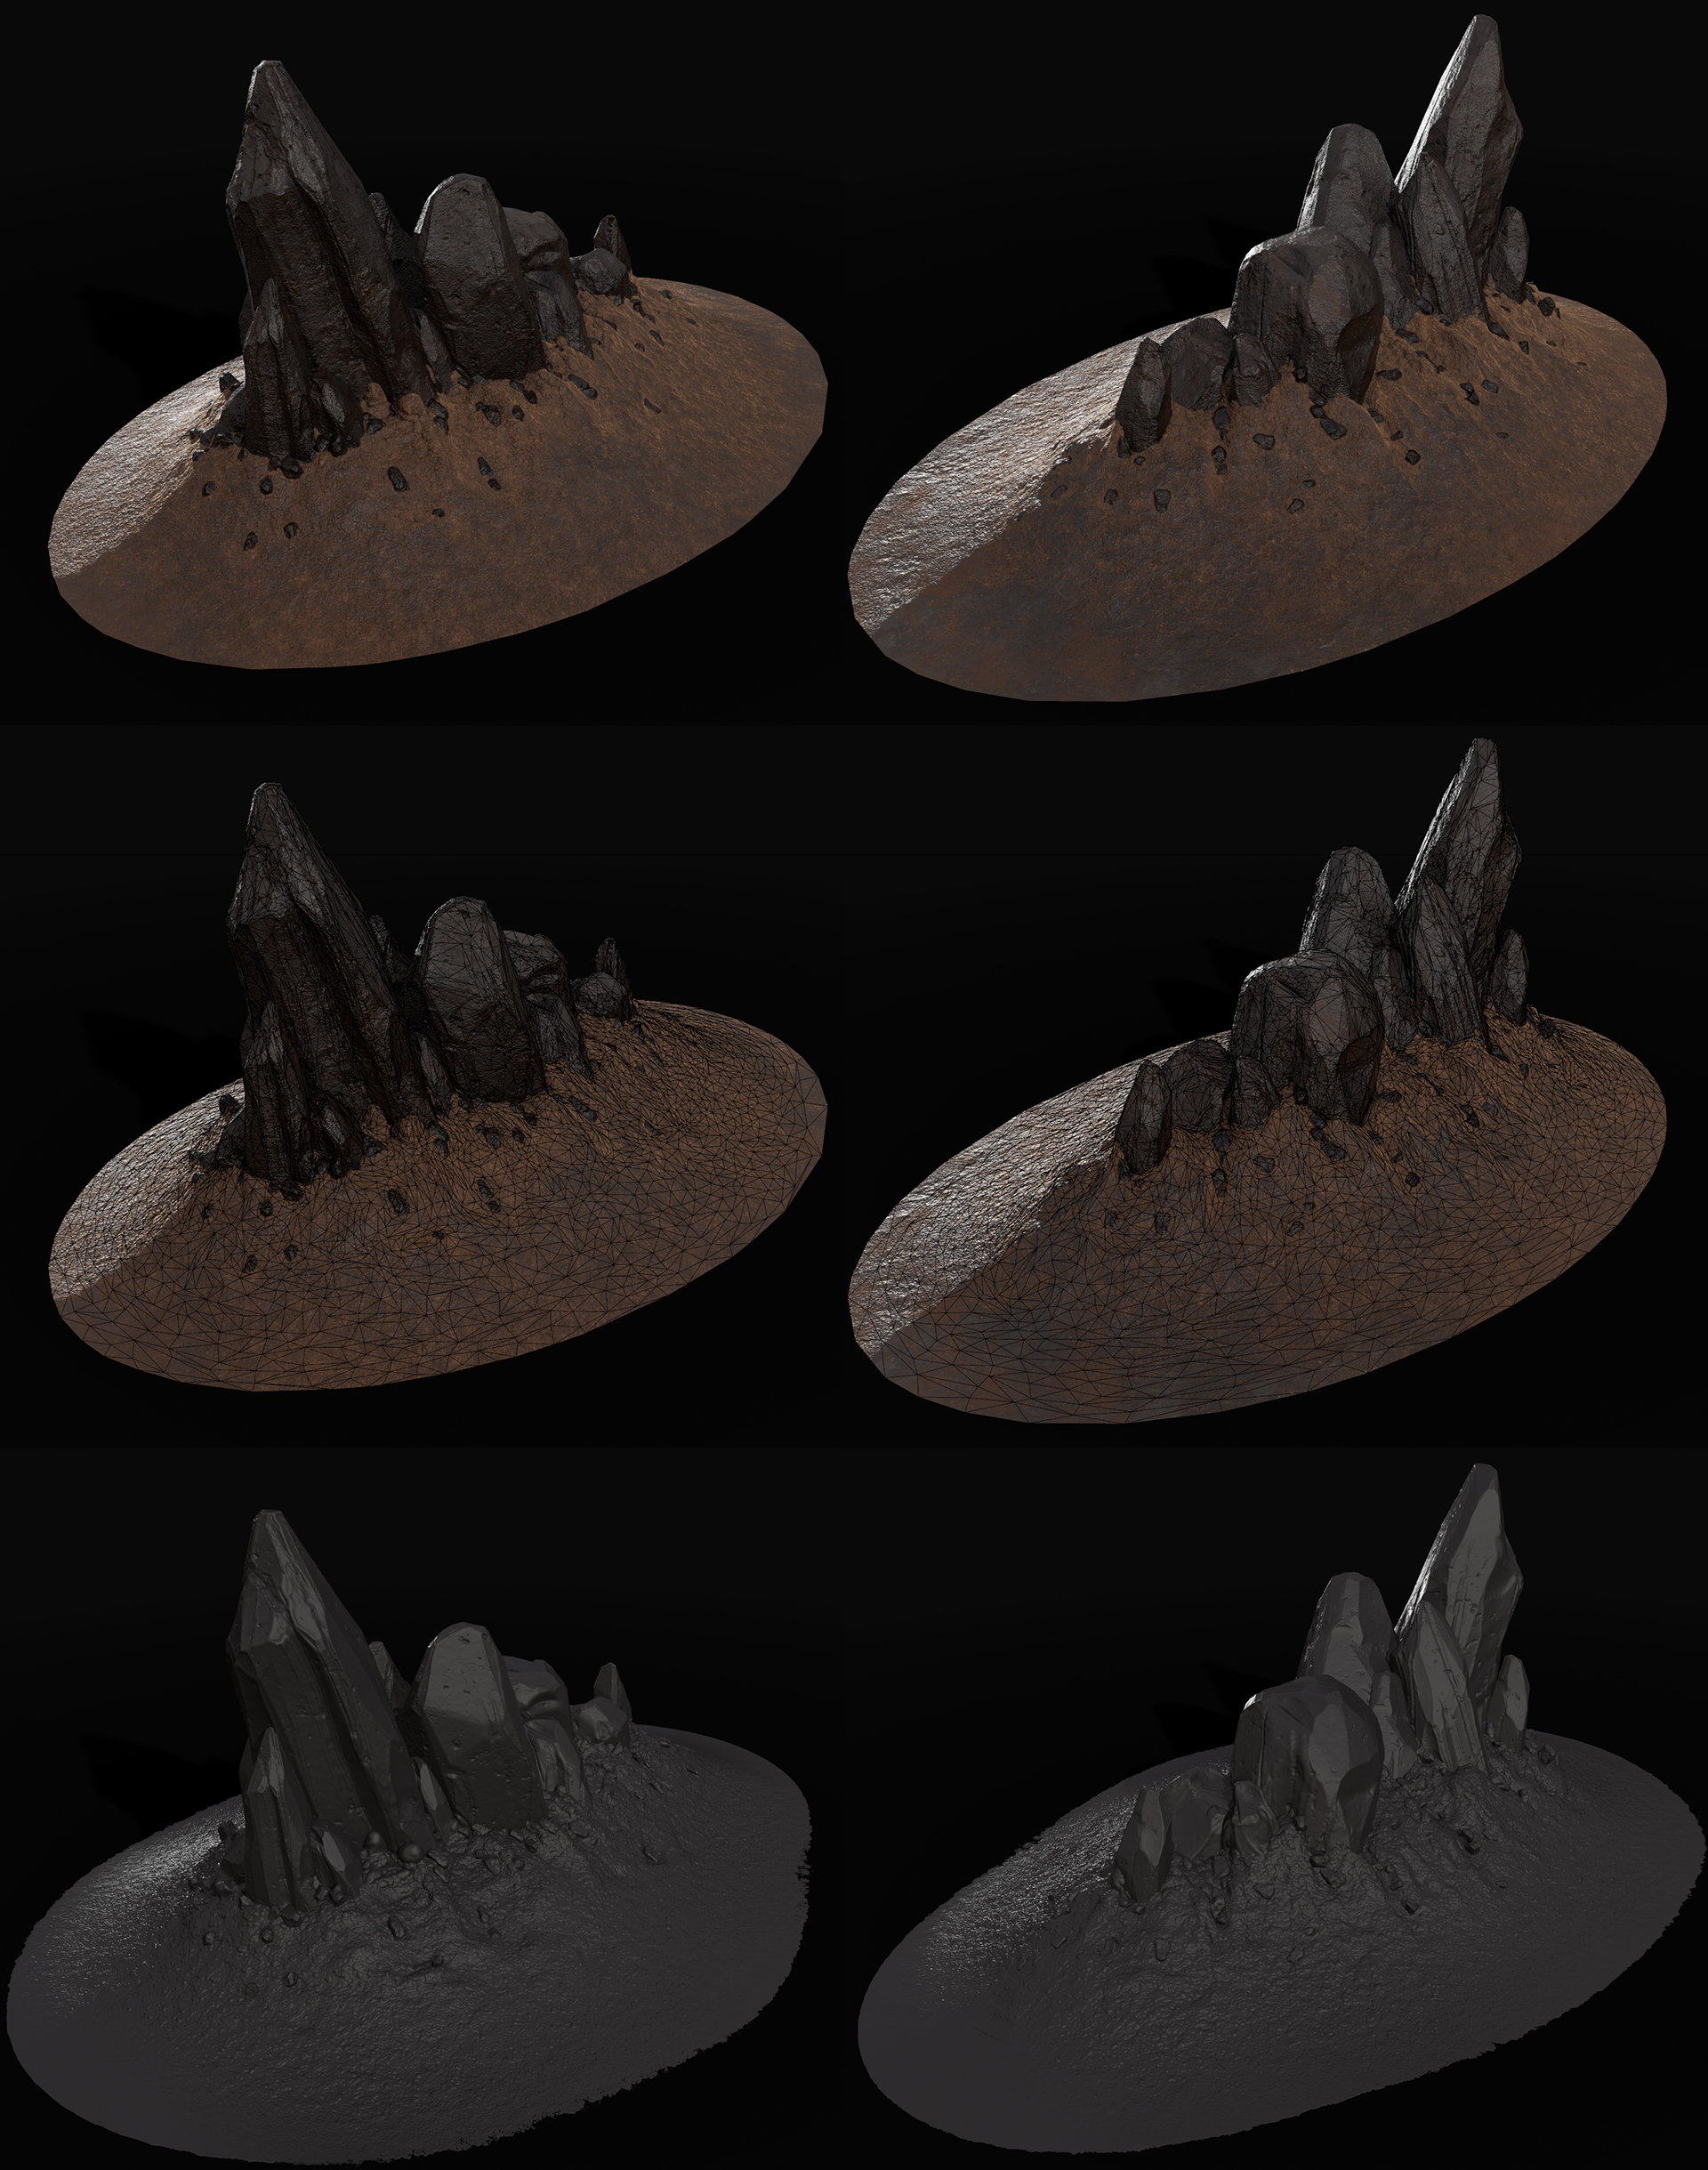 Rock clusters that were used to decorate the scene, texturing done with Substance Designer and Painter, Zbrush for high poly.